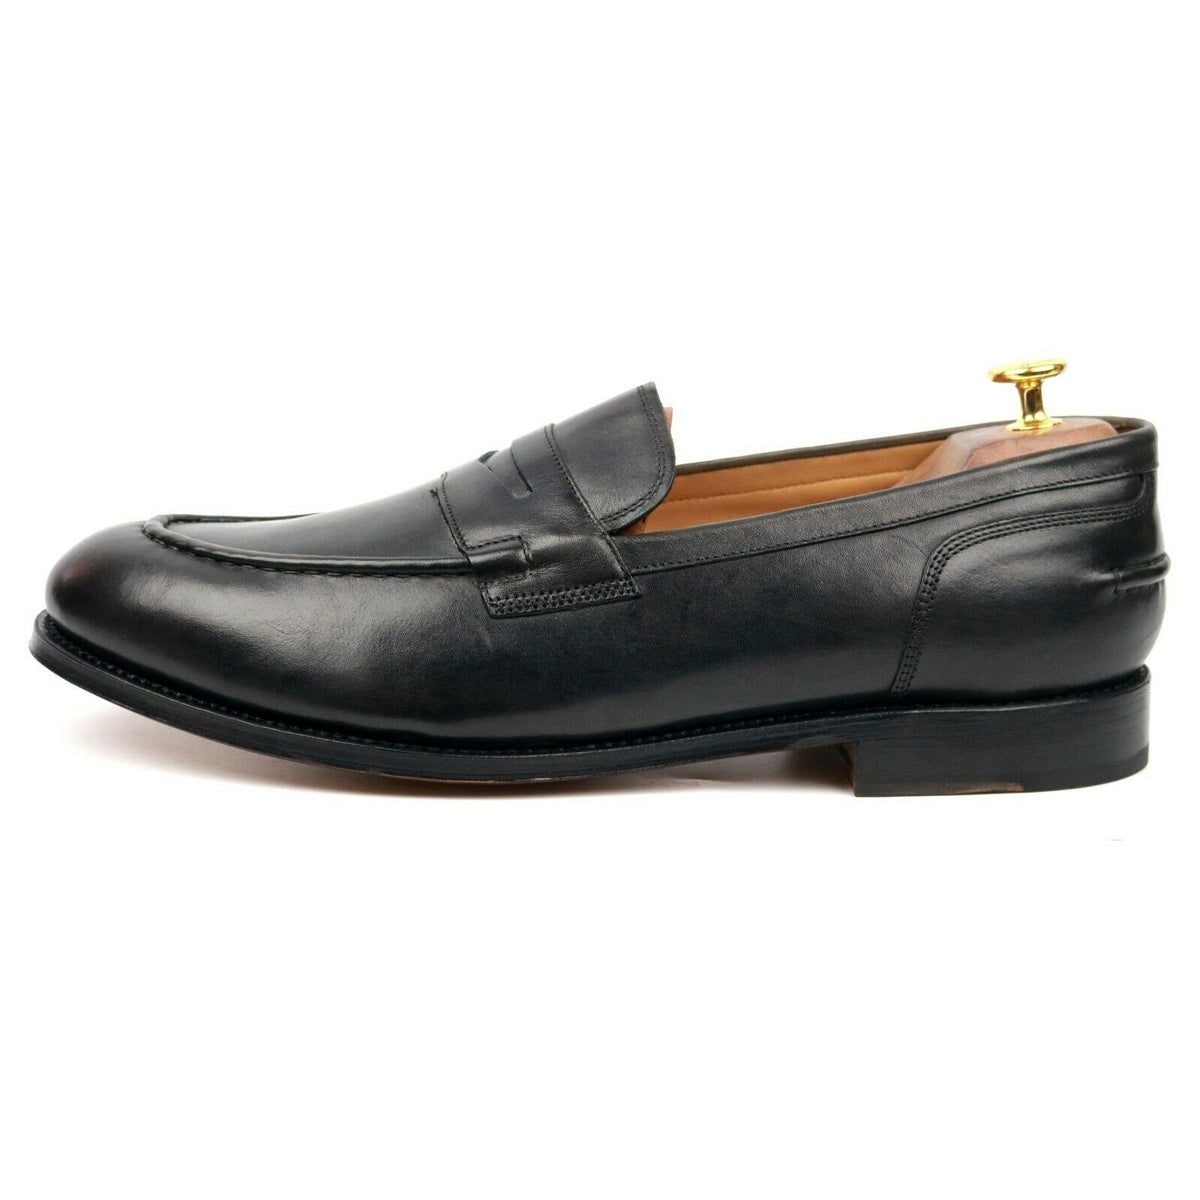 Grenson 'Maxwell' Dark Grey Leather Loafers UK 11 E